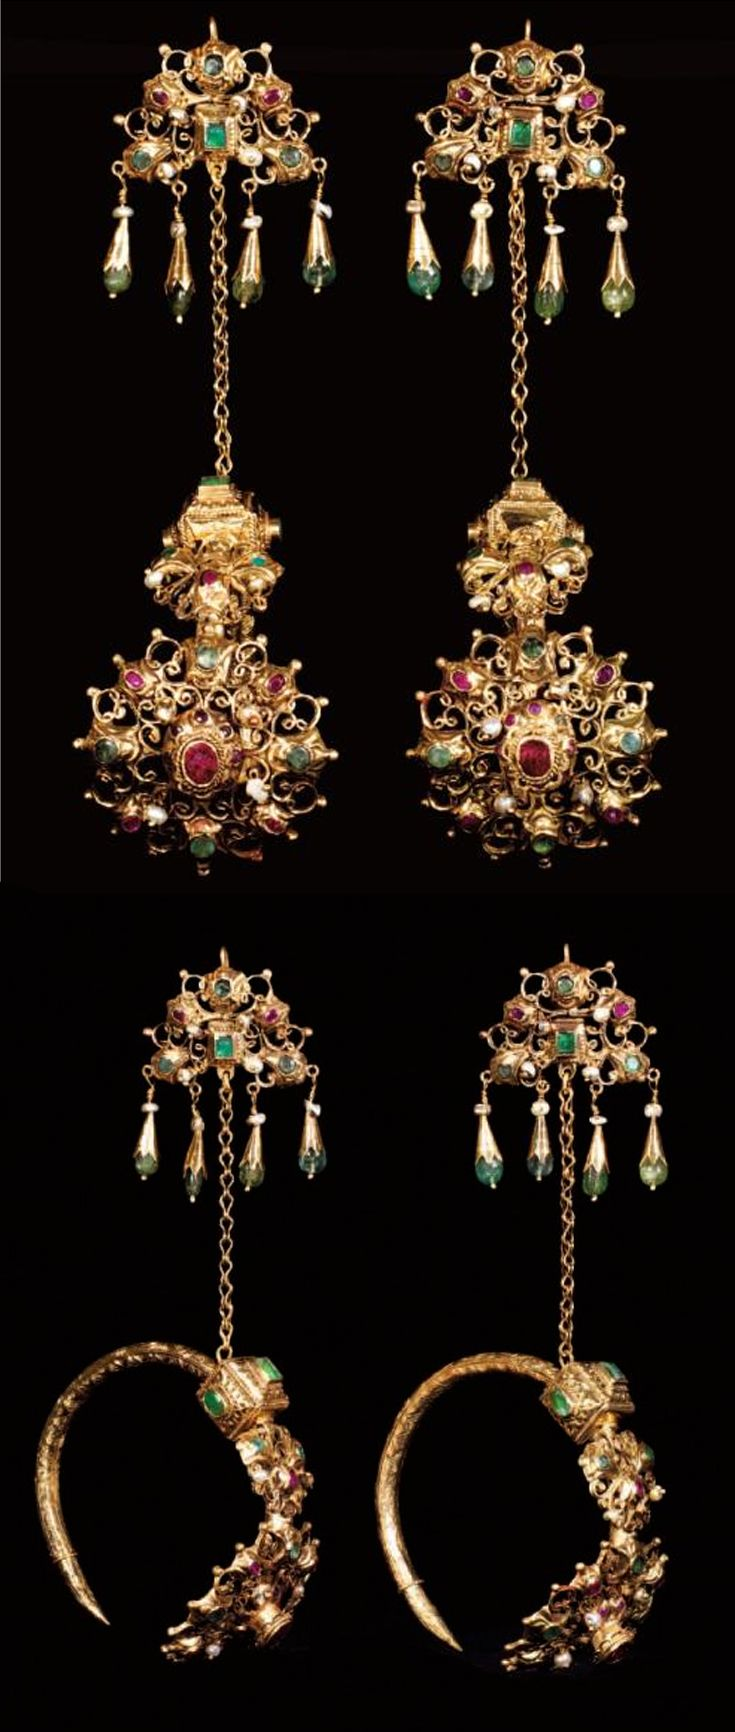 Morocco | Pair of ear ornaments ~ Khorras Kbach ~ gold, set with emeralds, red stones and baroque pearls. | End 18th to early 19th century | Northern Morocco; Fez to Tetouan and Tangier || Est. 25 000 - 30 000 € ~ (Dec '12)